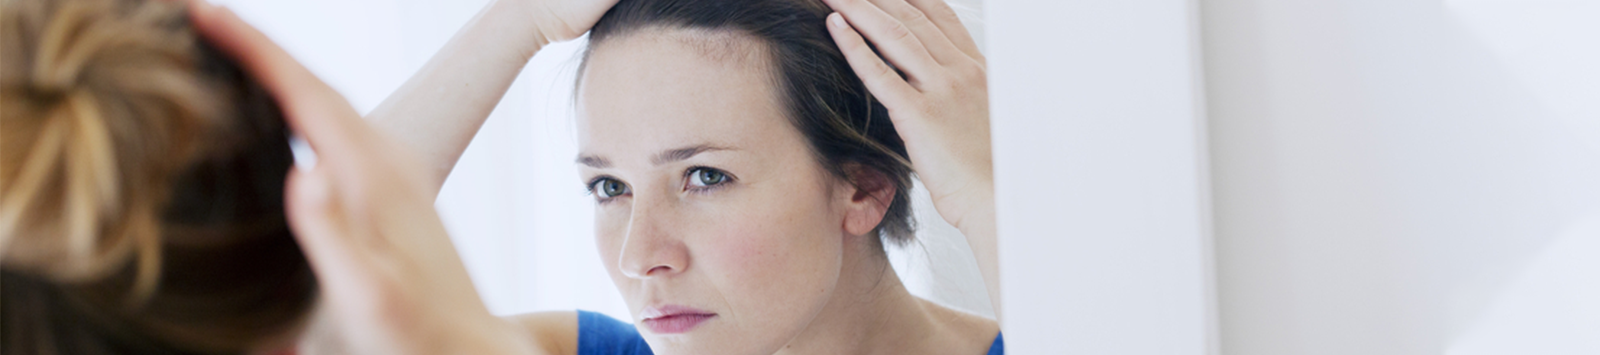 Frontal Hair Loss Problems & How to Treat Them